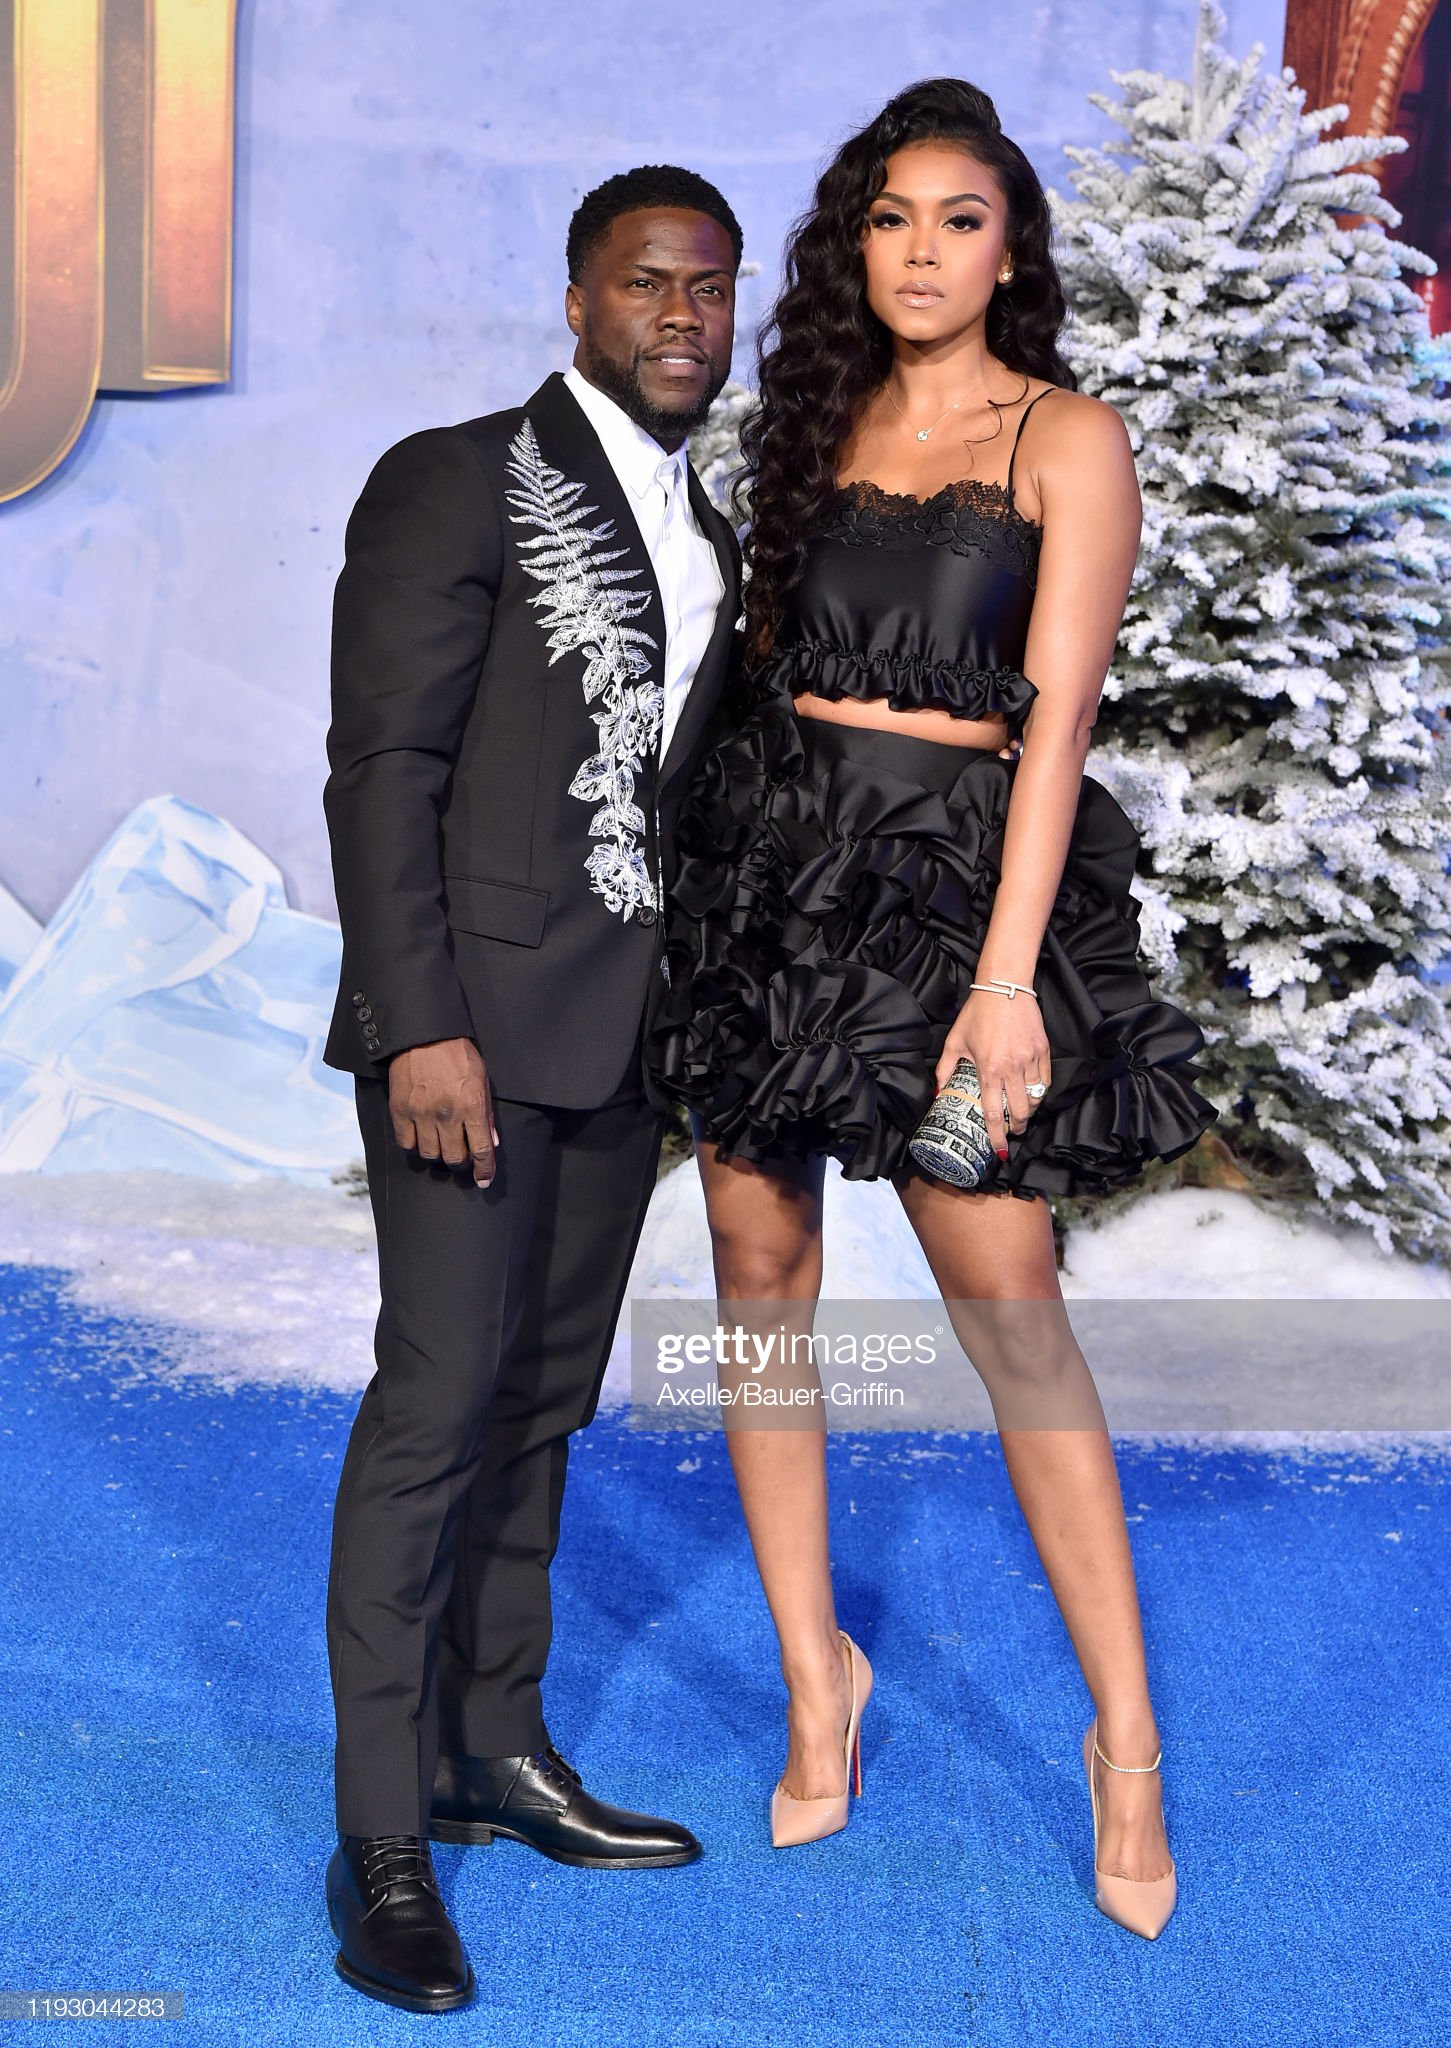 ¿Cuánto mide Eniko Parrish? - Real height Kevin-hart-and-eniko-parrish-attend-the-premiere-of-sony-pictures-picture-id1193044283?s=2048x2048